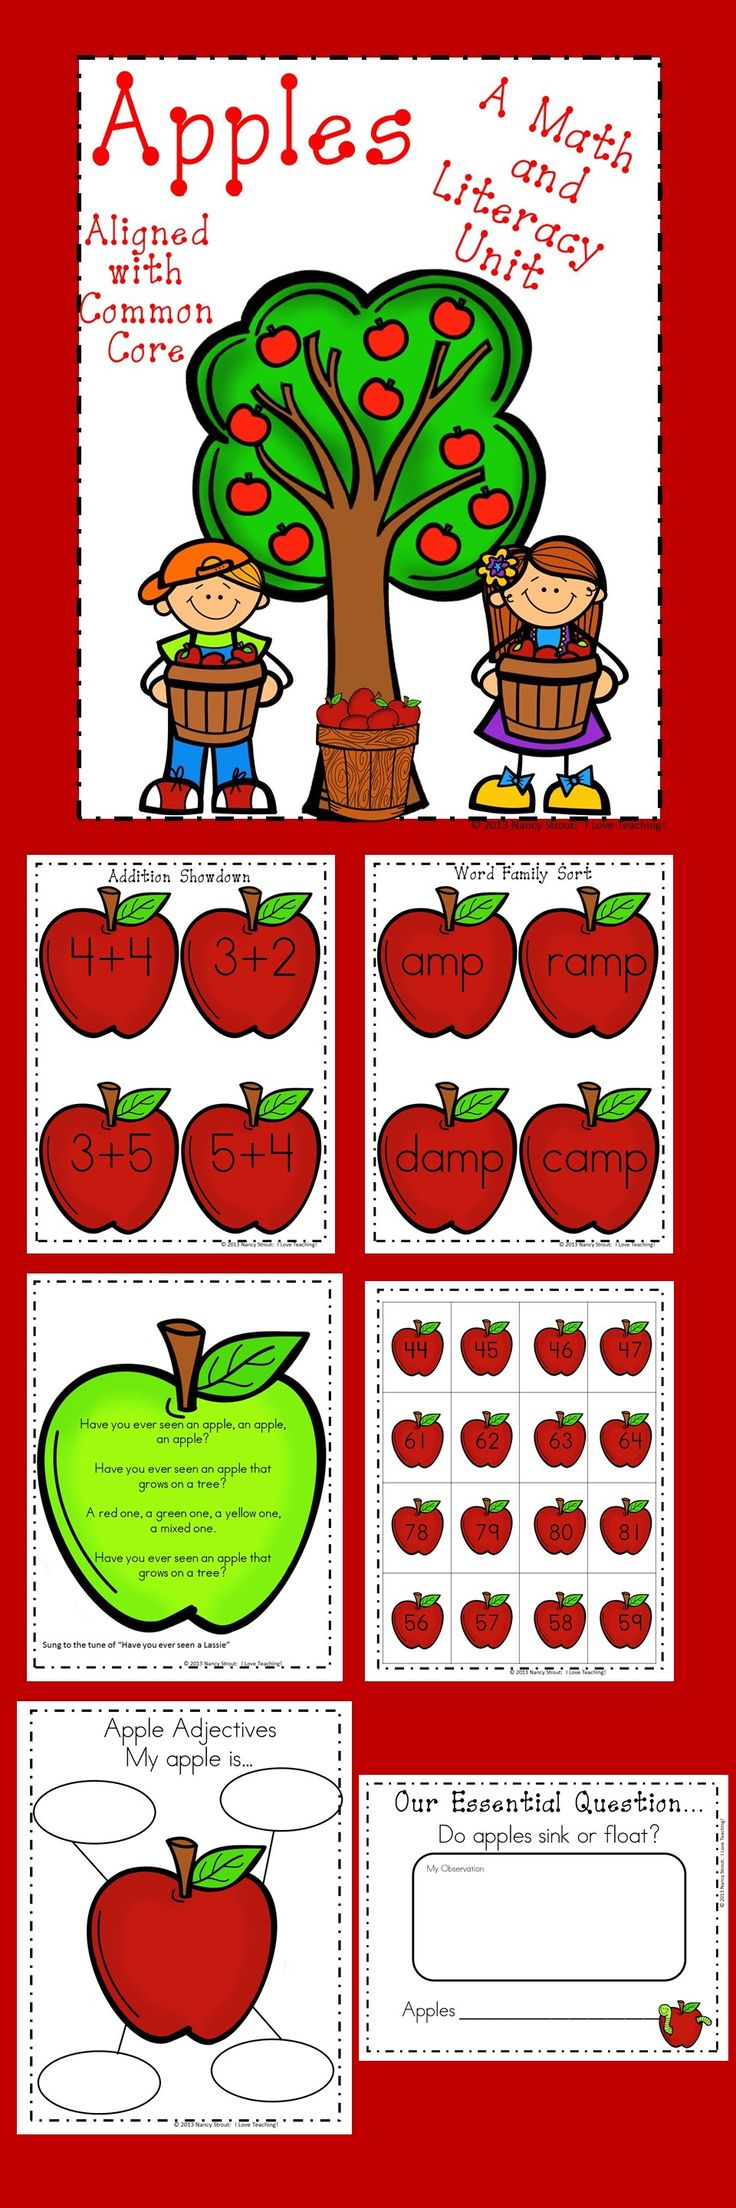 Apples! Apples! Apples! This apple unit includes two experiments, two apple crafts, an apple song, a tree map, inferencing activity, word family sort, sight word concentration, apple adjectives, numbers and tallies, apple graph, and two math games.